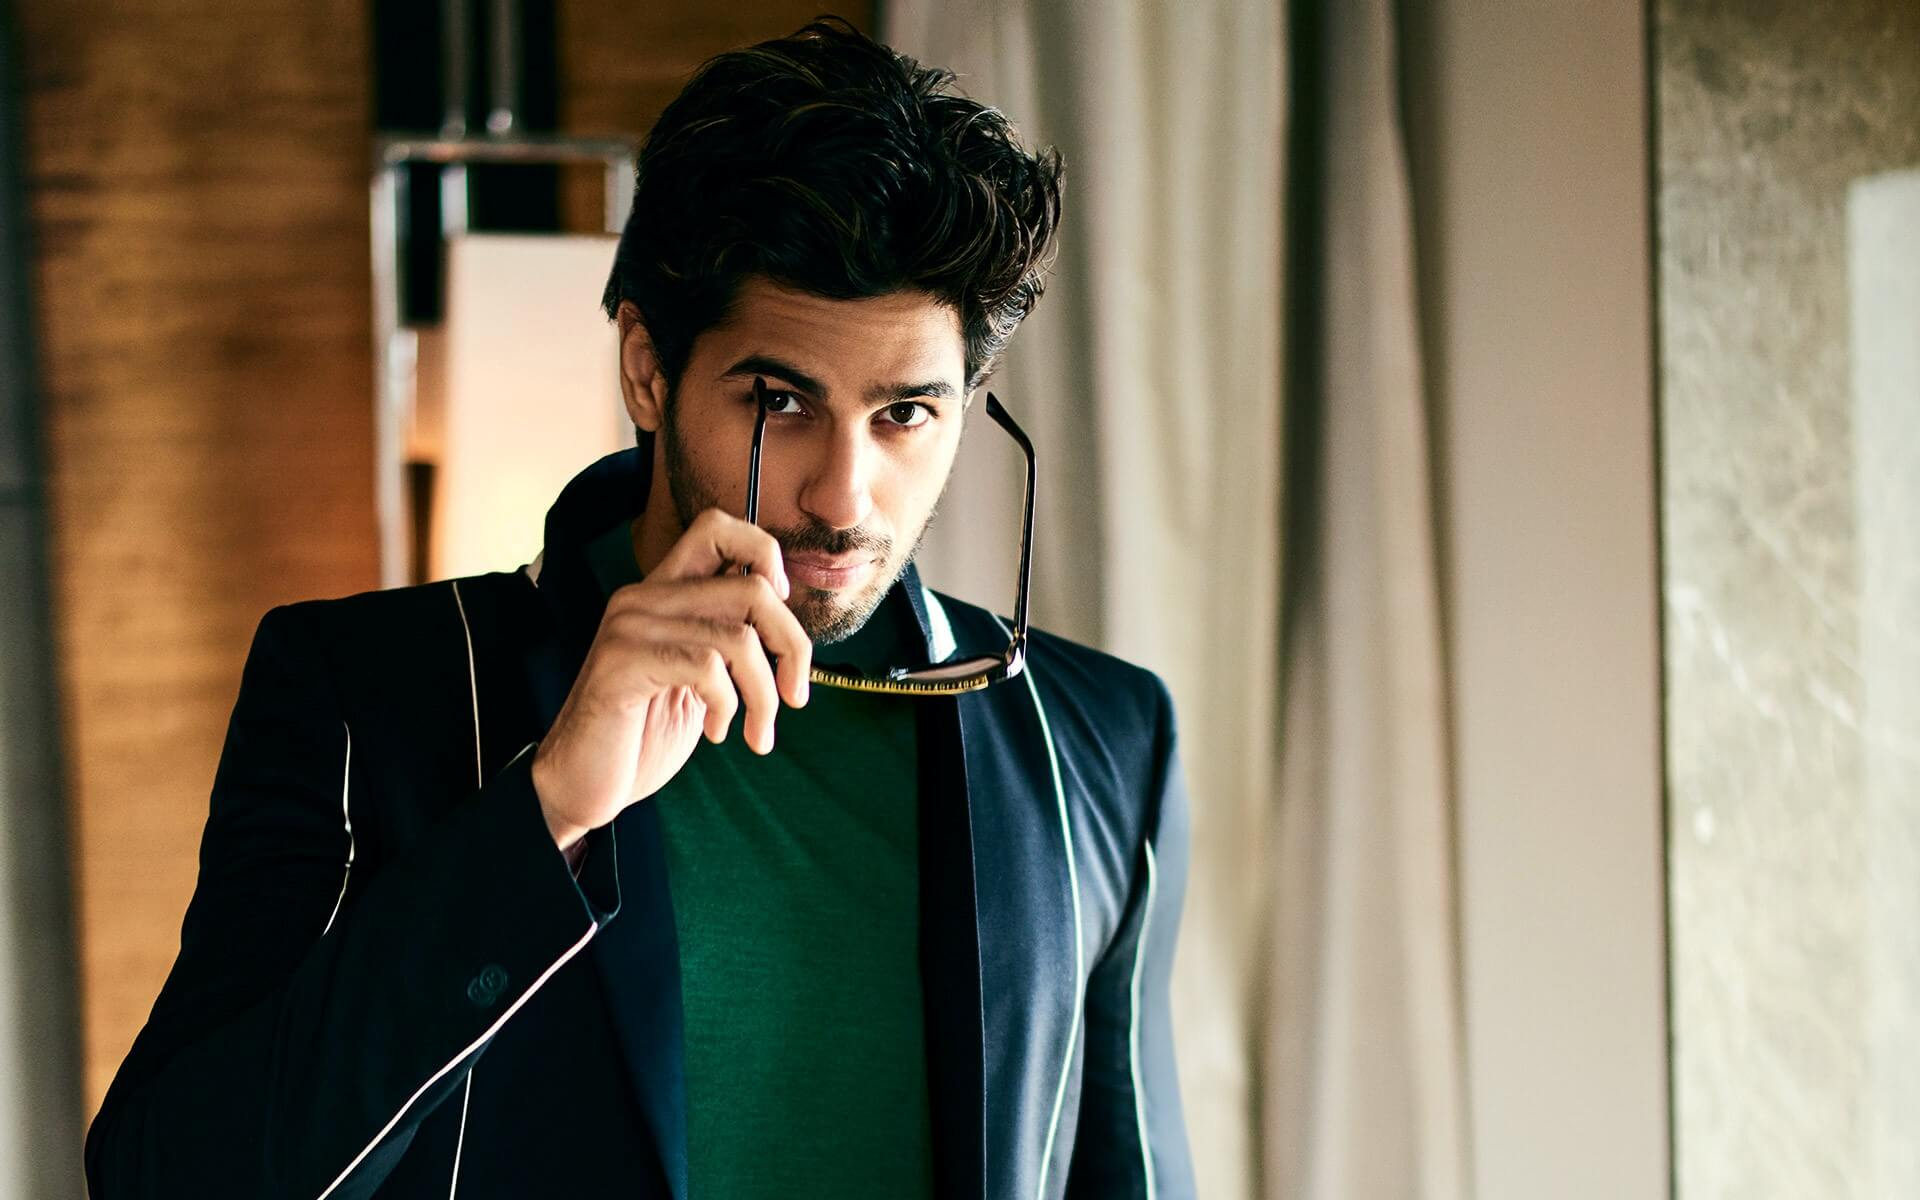 Sidharth Malhotra Movies, Height, Age, Photos, Birth Date, Biography, Girlfriend, Family, Hairstyle, Education, Details, Net Worth, Awards, Wiki, Instagram, Facebook, Imdb, Twitter (22)